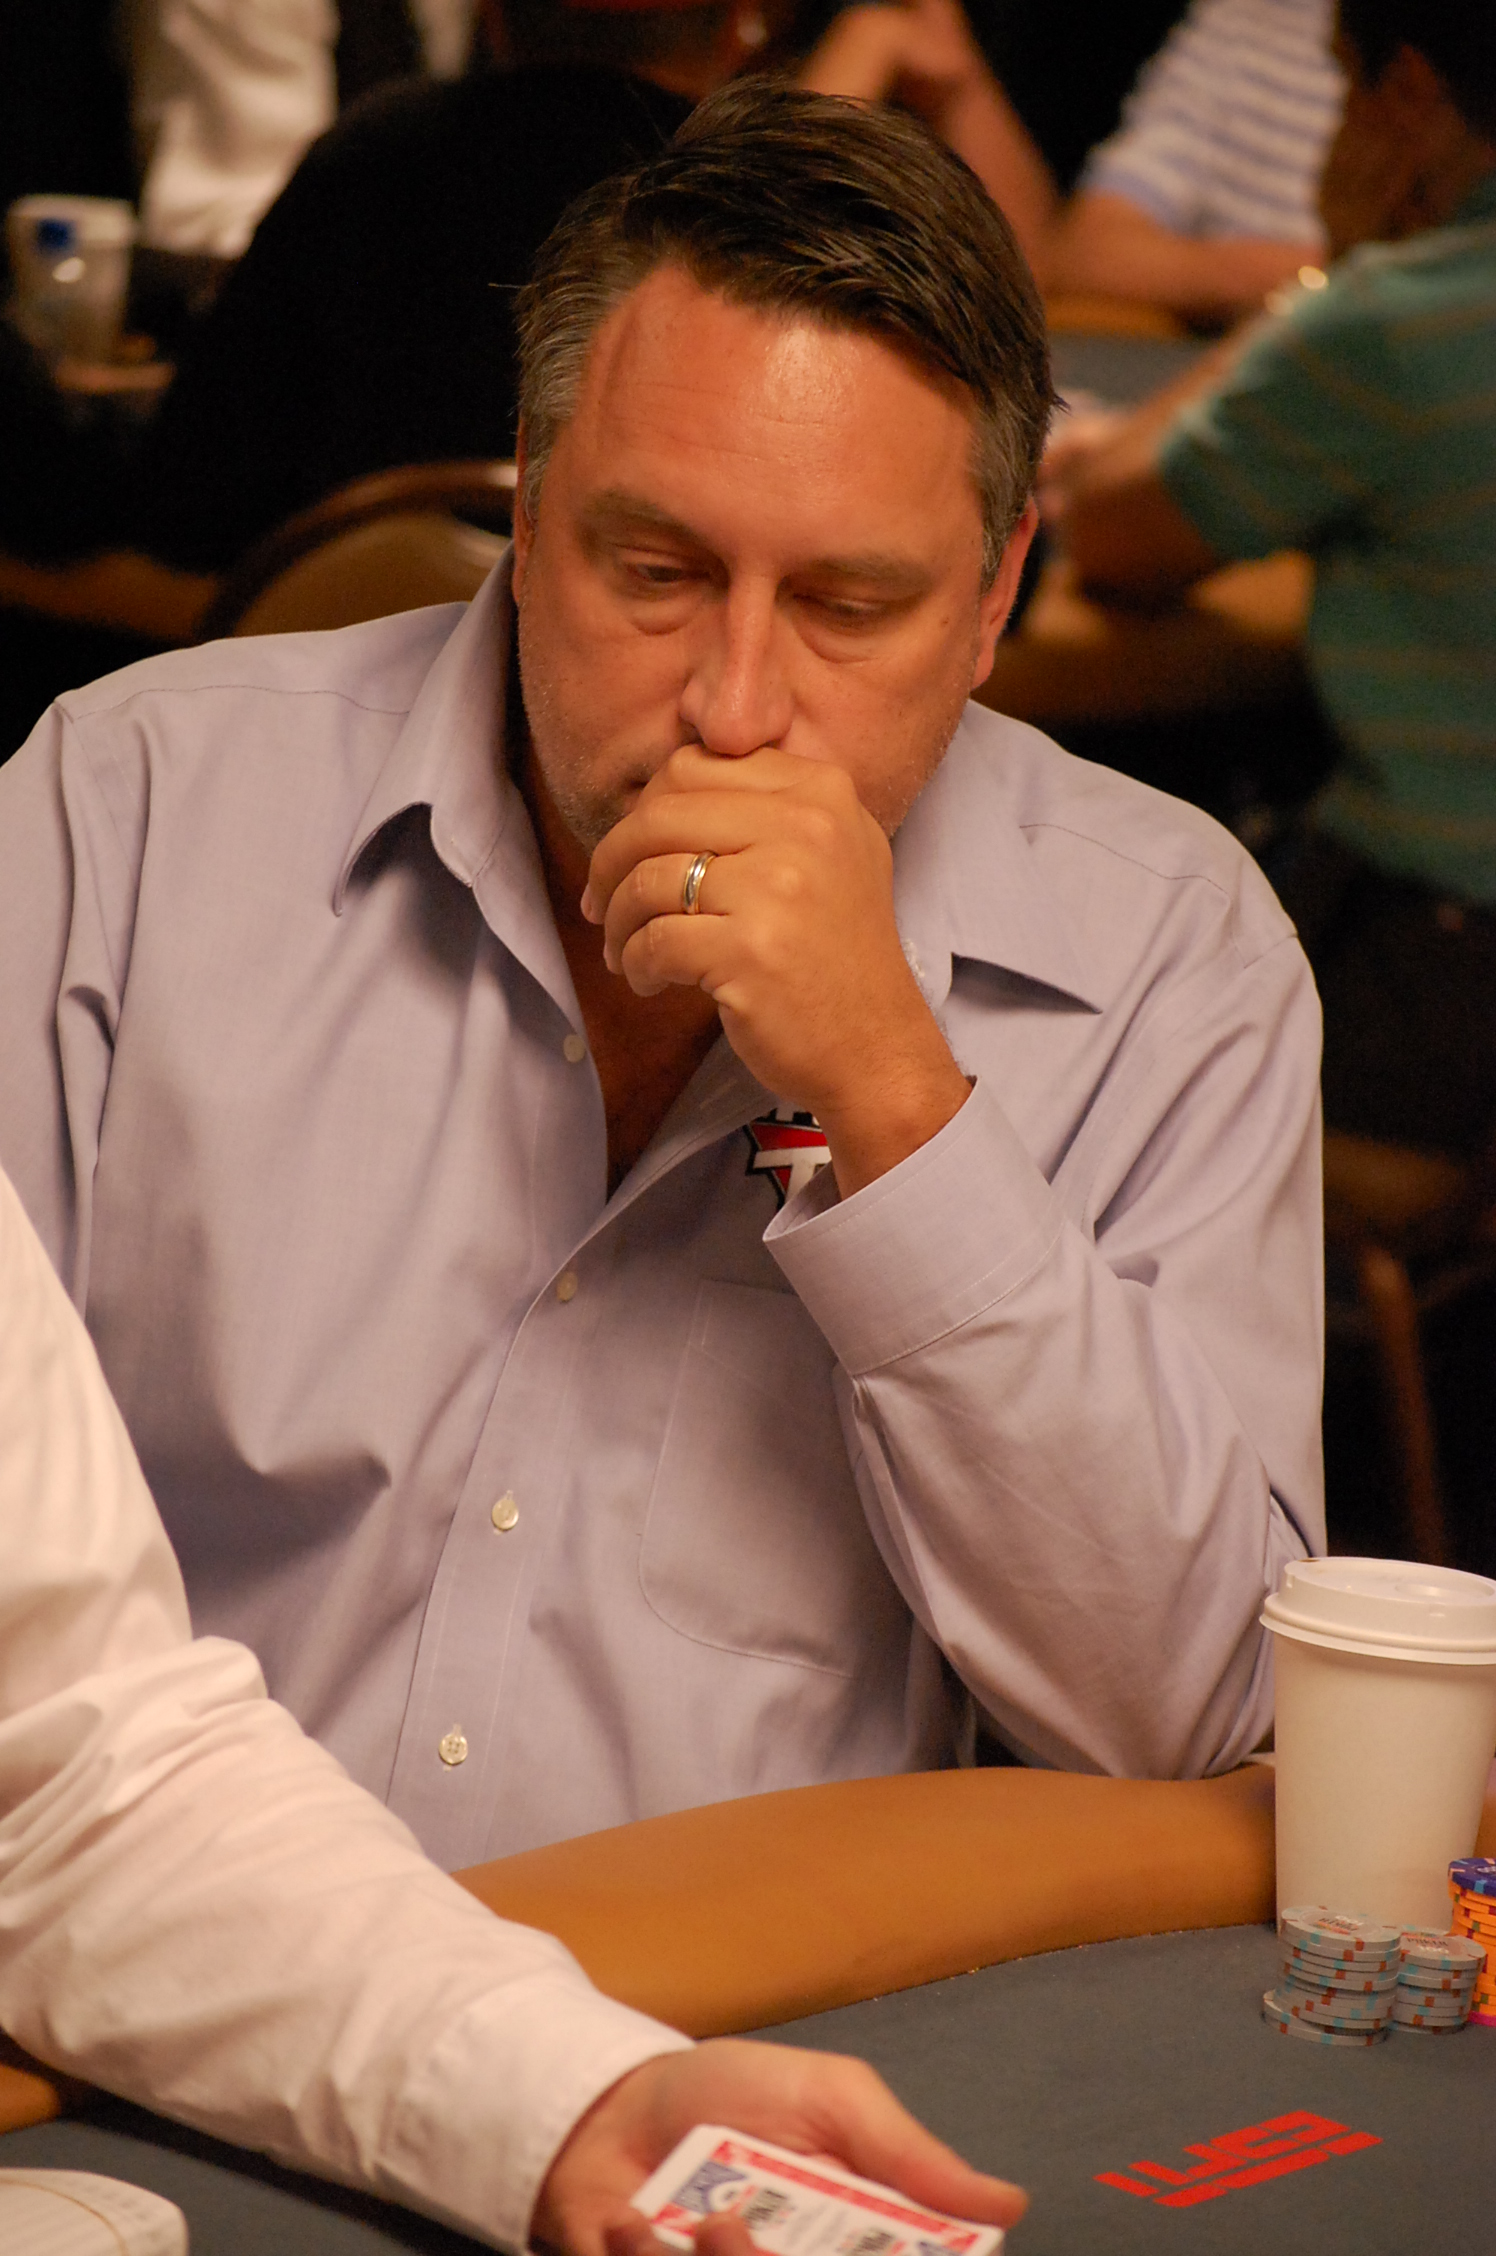 2007 World Series of Poker results